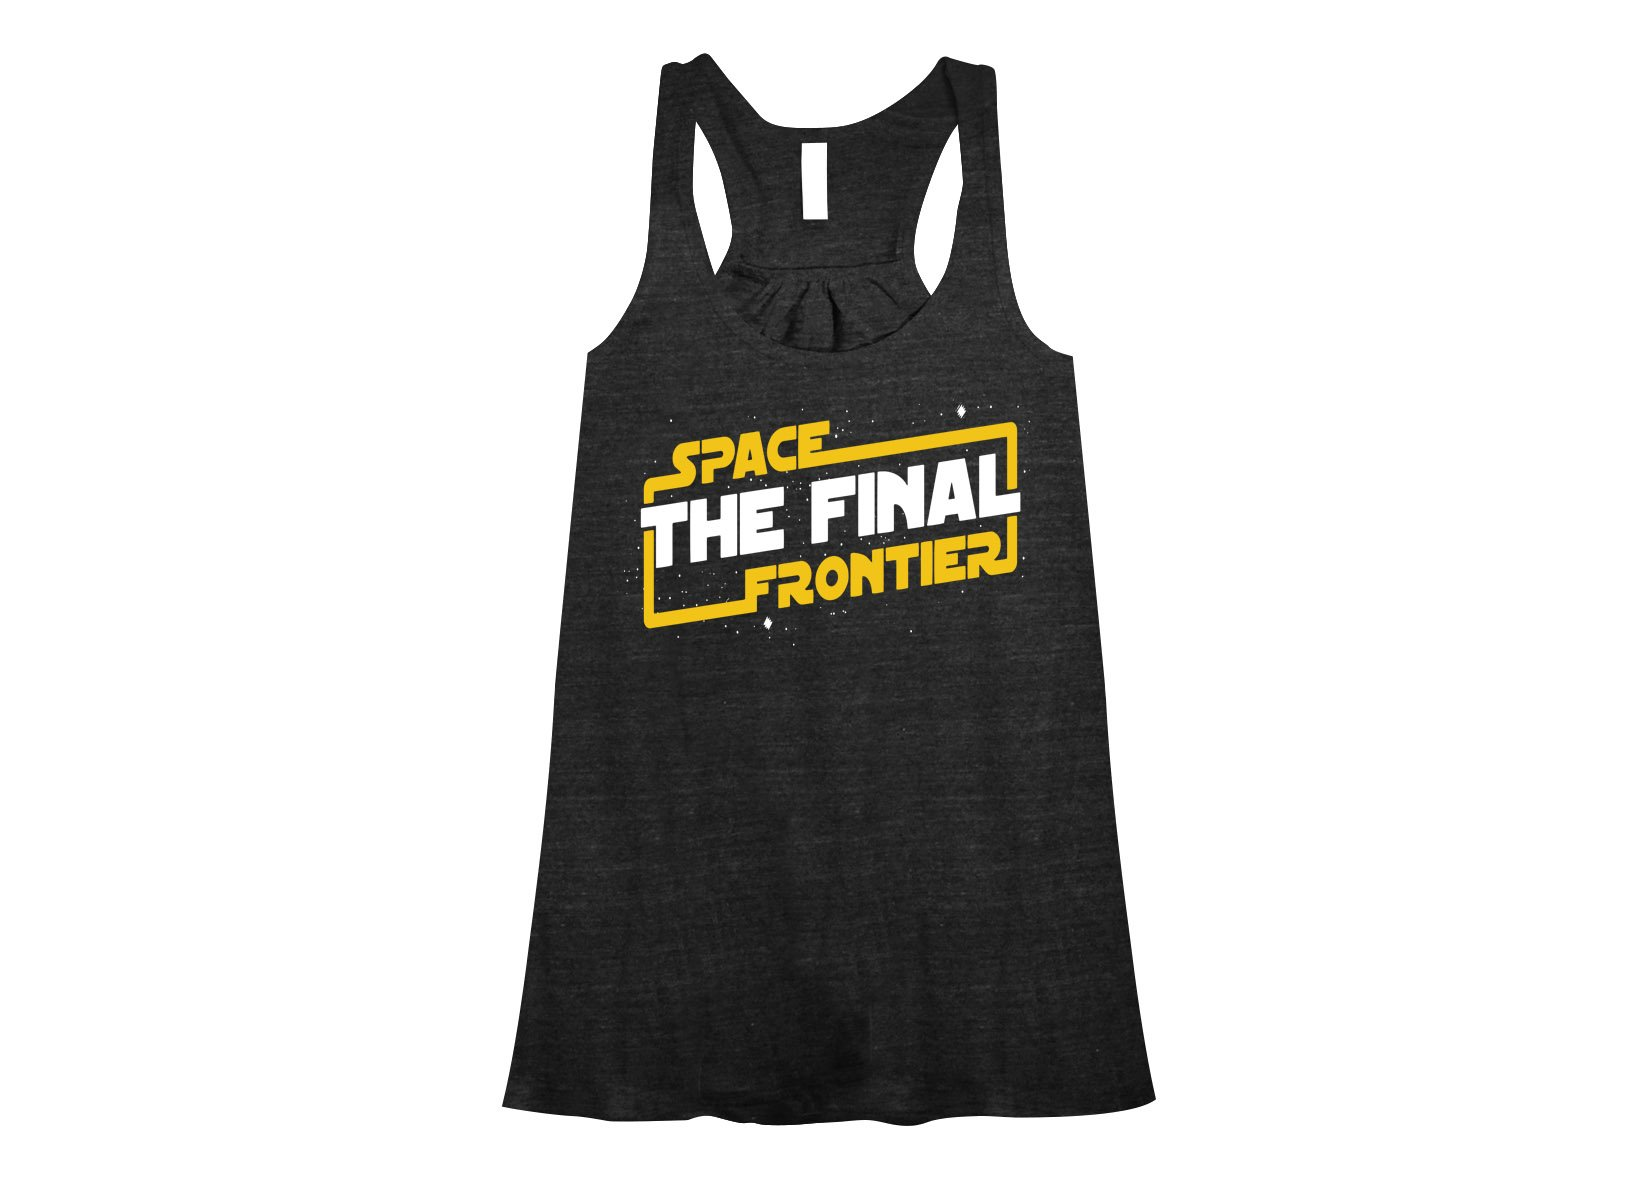 Space The Final Frontier on Womens Tanks T-Shirt